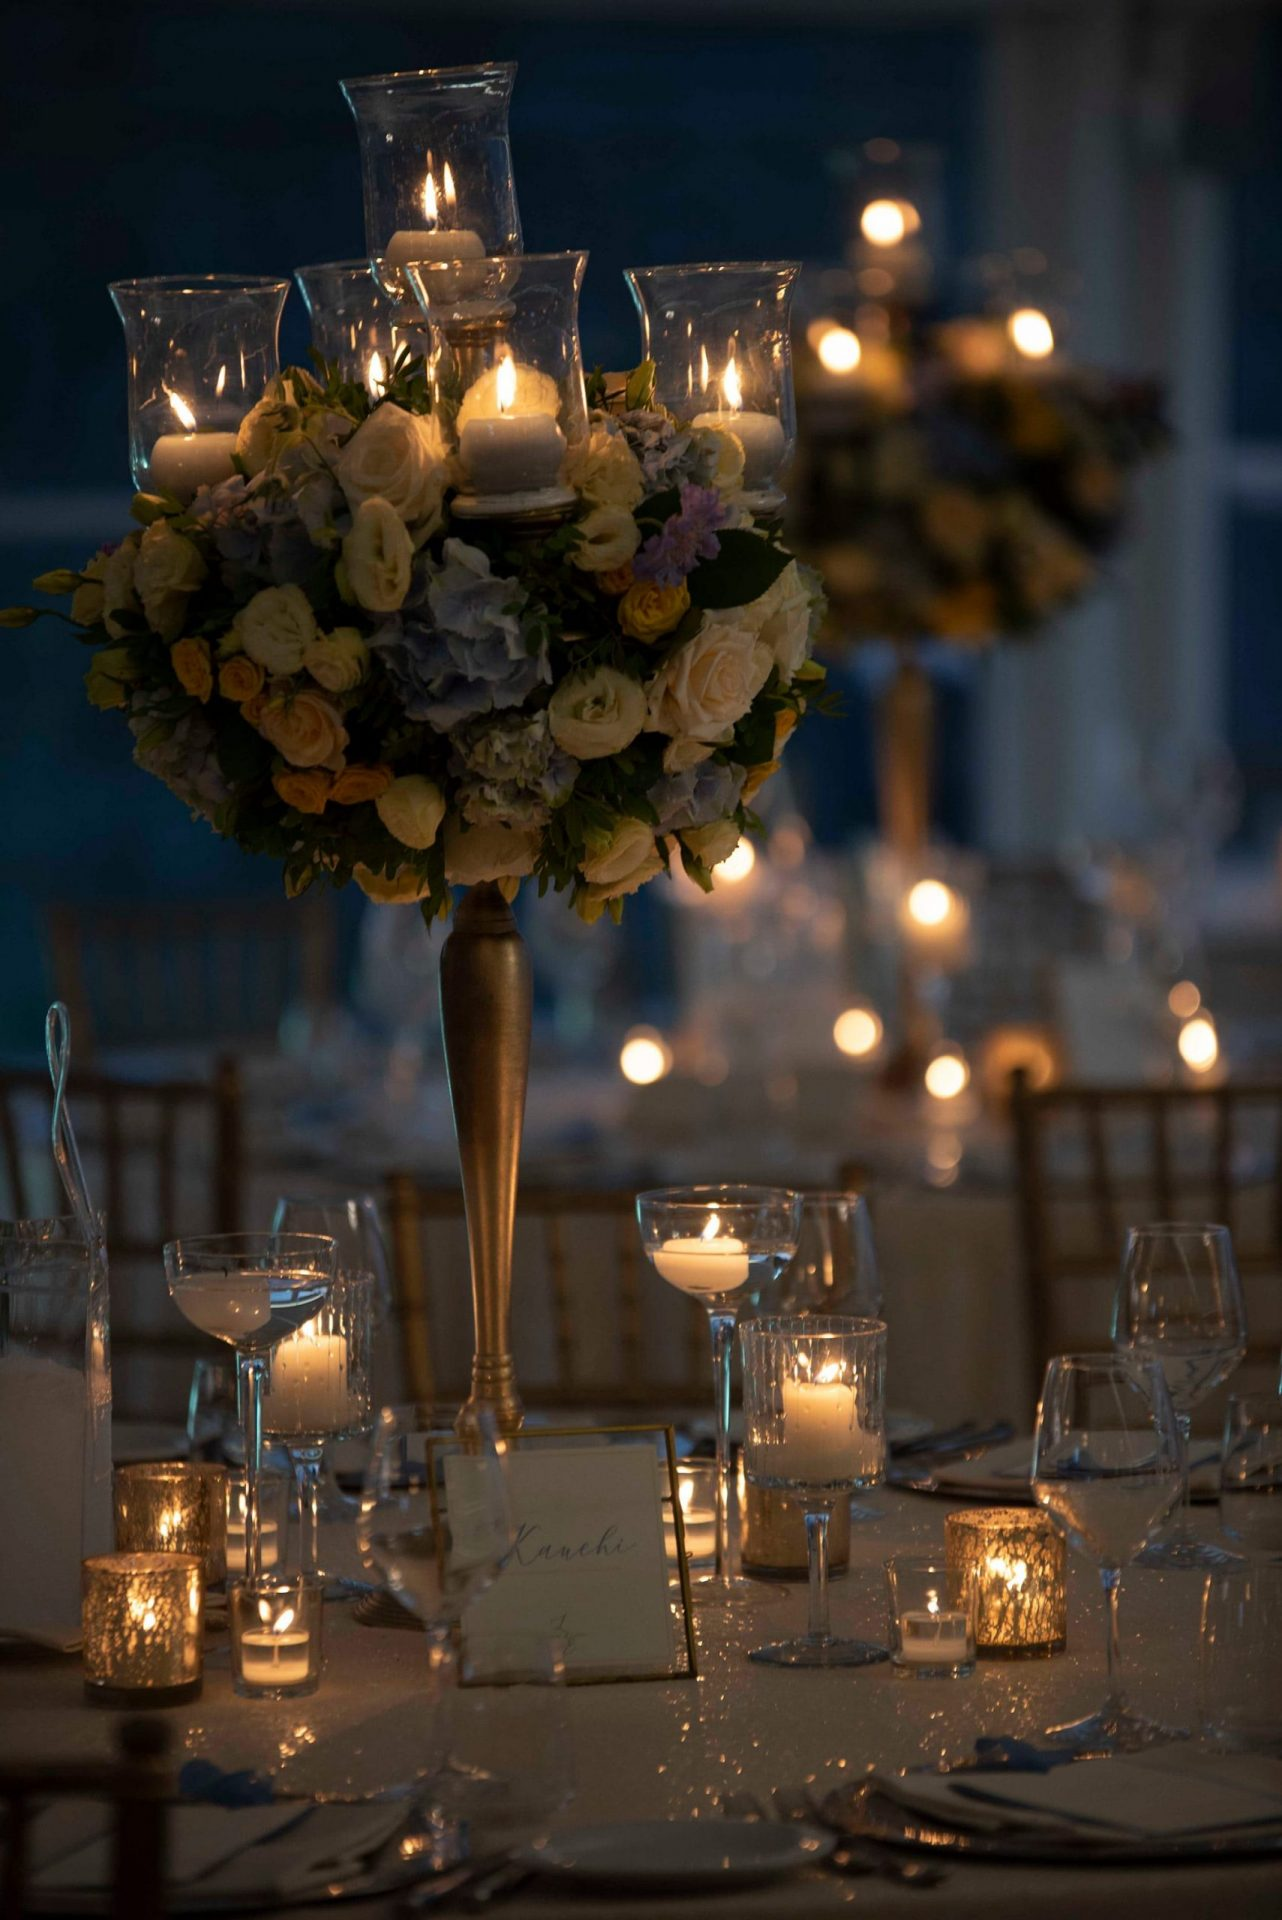 Linda and Enrico, tall flowers centrepiece